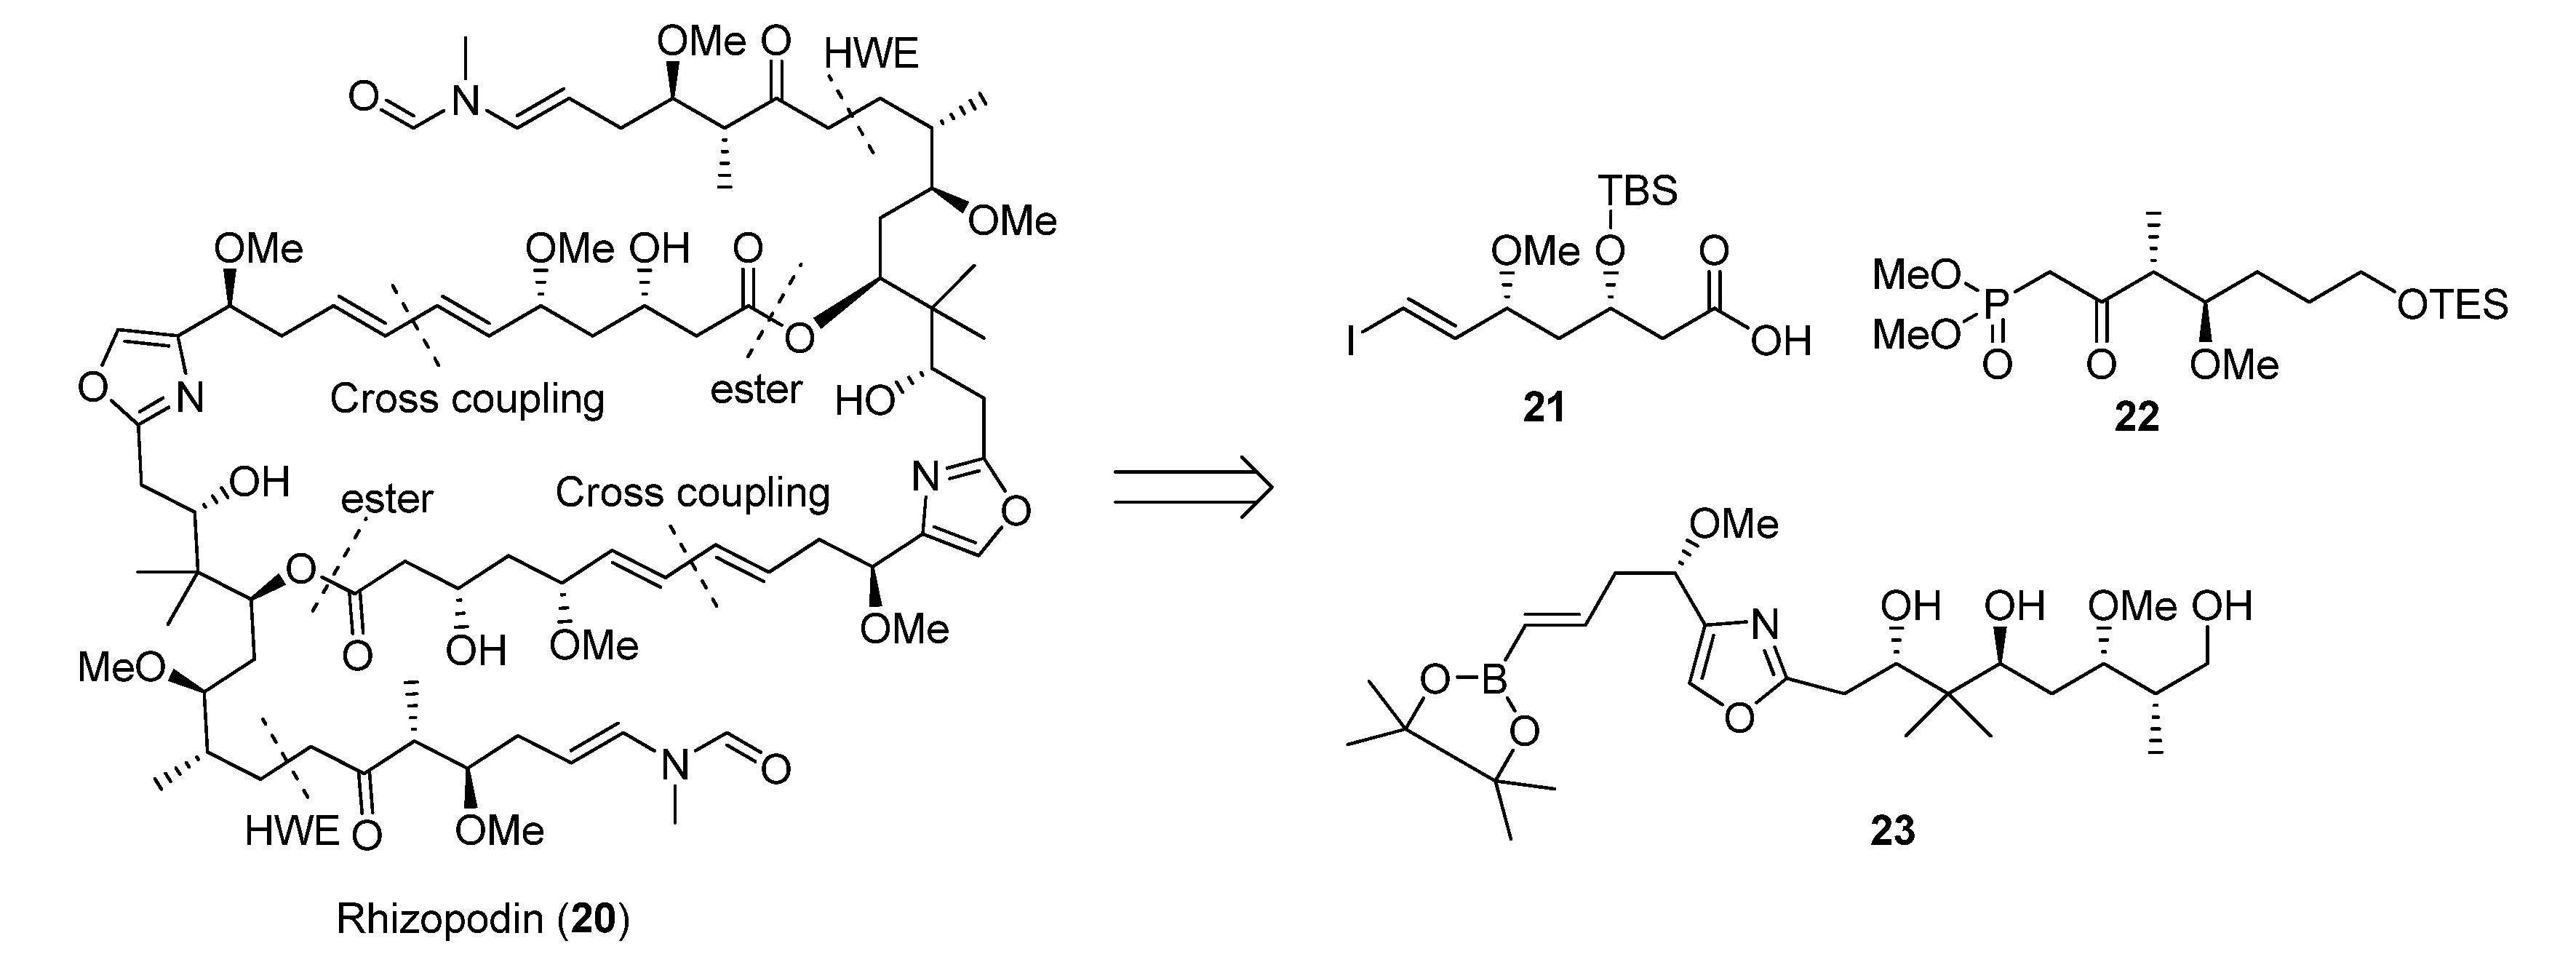 ring opening metathesis polymerization norbornene Optimized ring-opening metathesis polymerization (romp) conditions for cyclohexenyl norbornene (chnb) have been determined romp of chnb was carried out with ruthenium trichloride hydrate and ruthenium benzylidene catalysts.